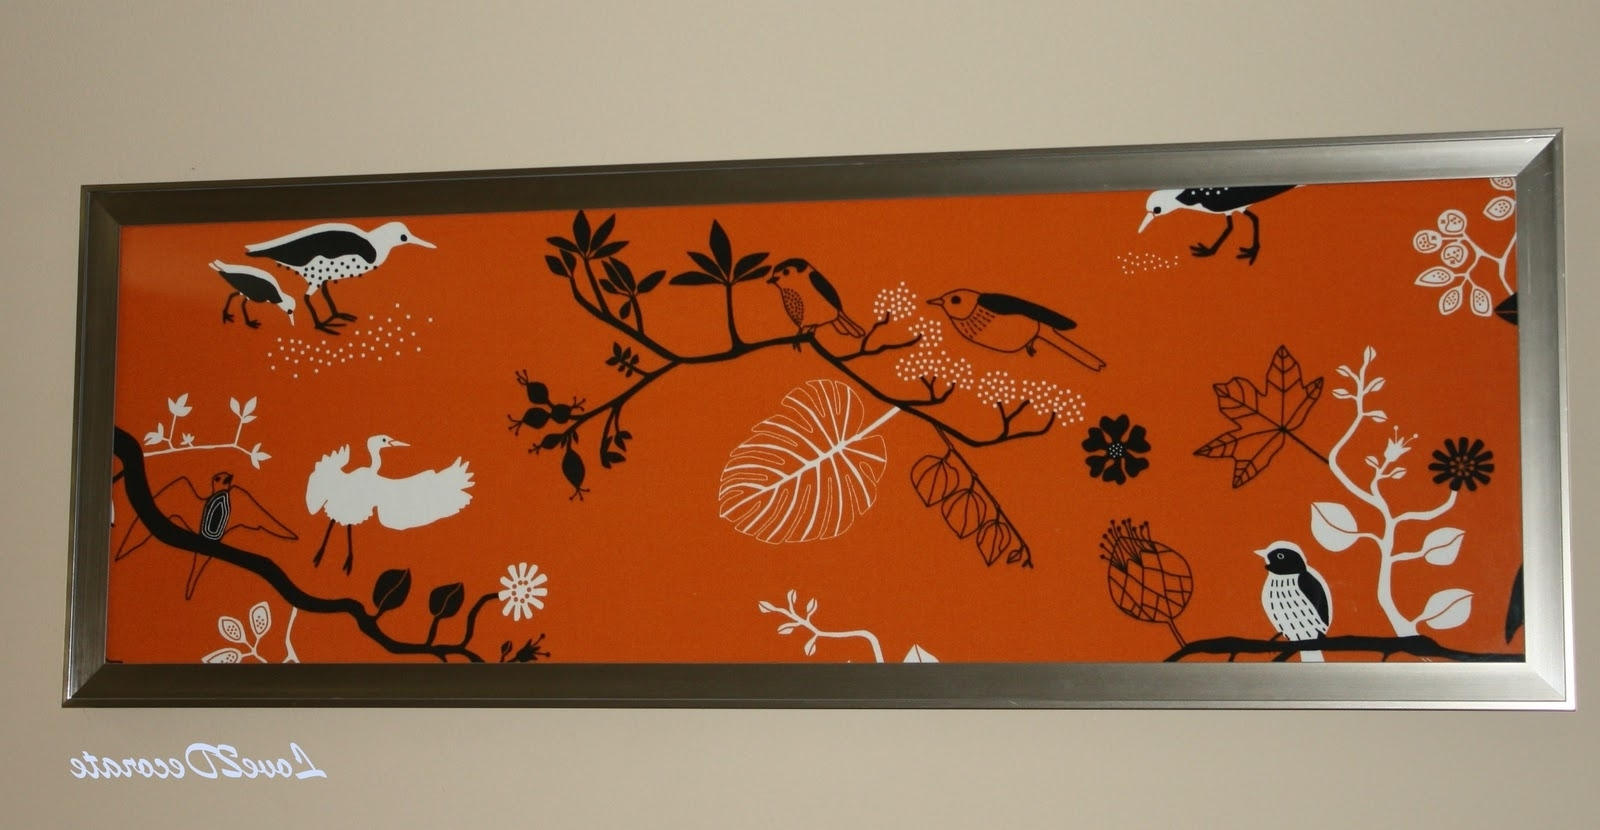 Well Known Love 2 Decorate: Frame + Fabric = Wall Art Within Framed Fabric Wall Art (View 11 of 15)